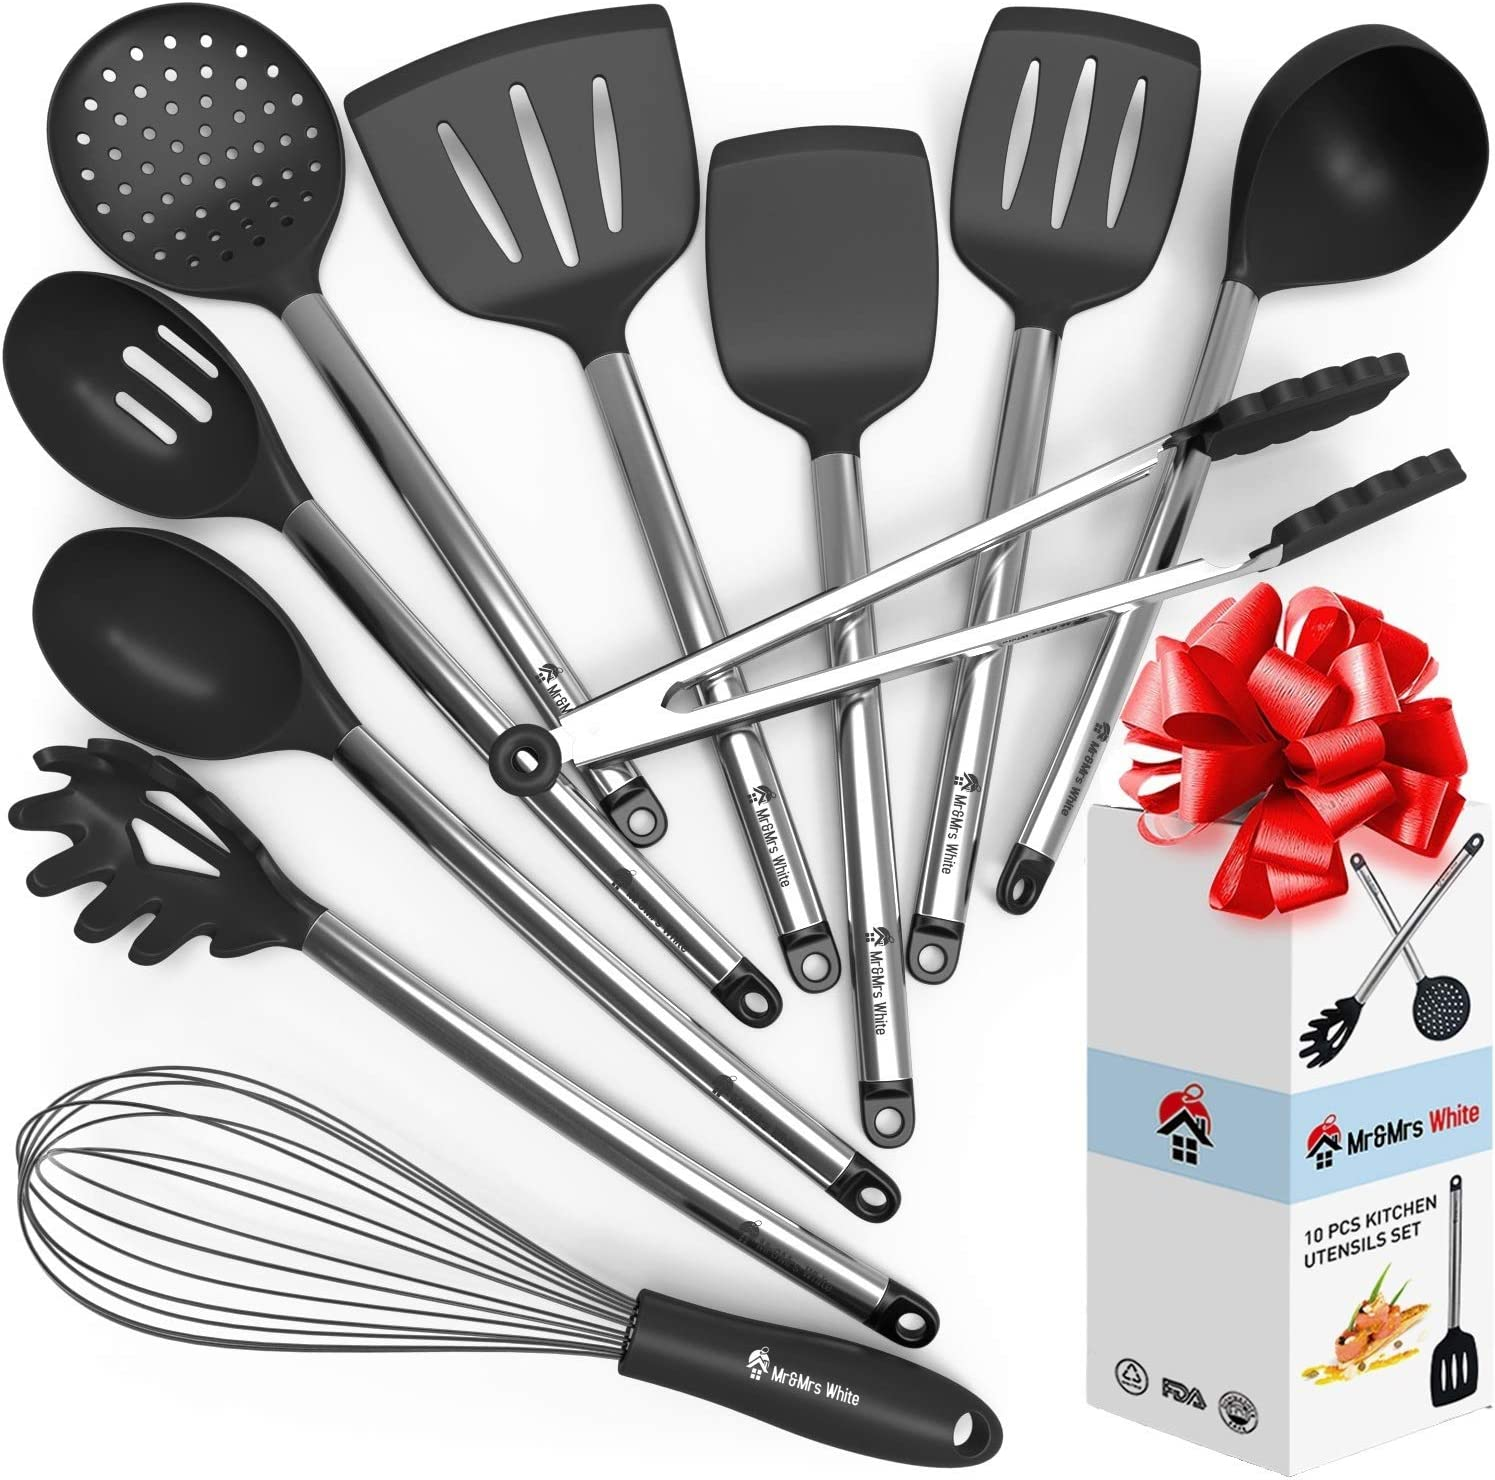 Amazon Com Cooking Silicone Utensils Set 10 Best Nonstick Kitchen Cookware Utensil Sets Large Hanging Spoons Spatula Set Non Toxic Cook Gadget Kit Black Kitchen Dining